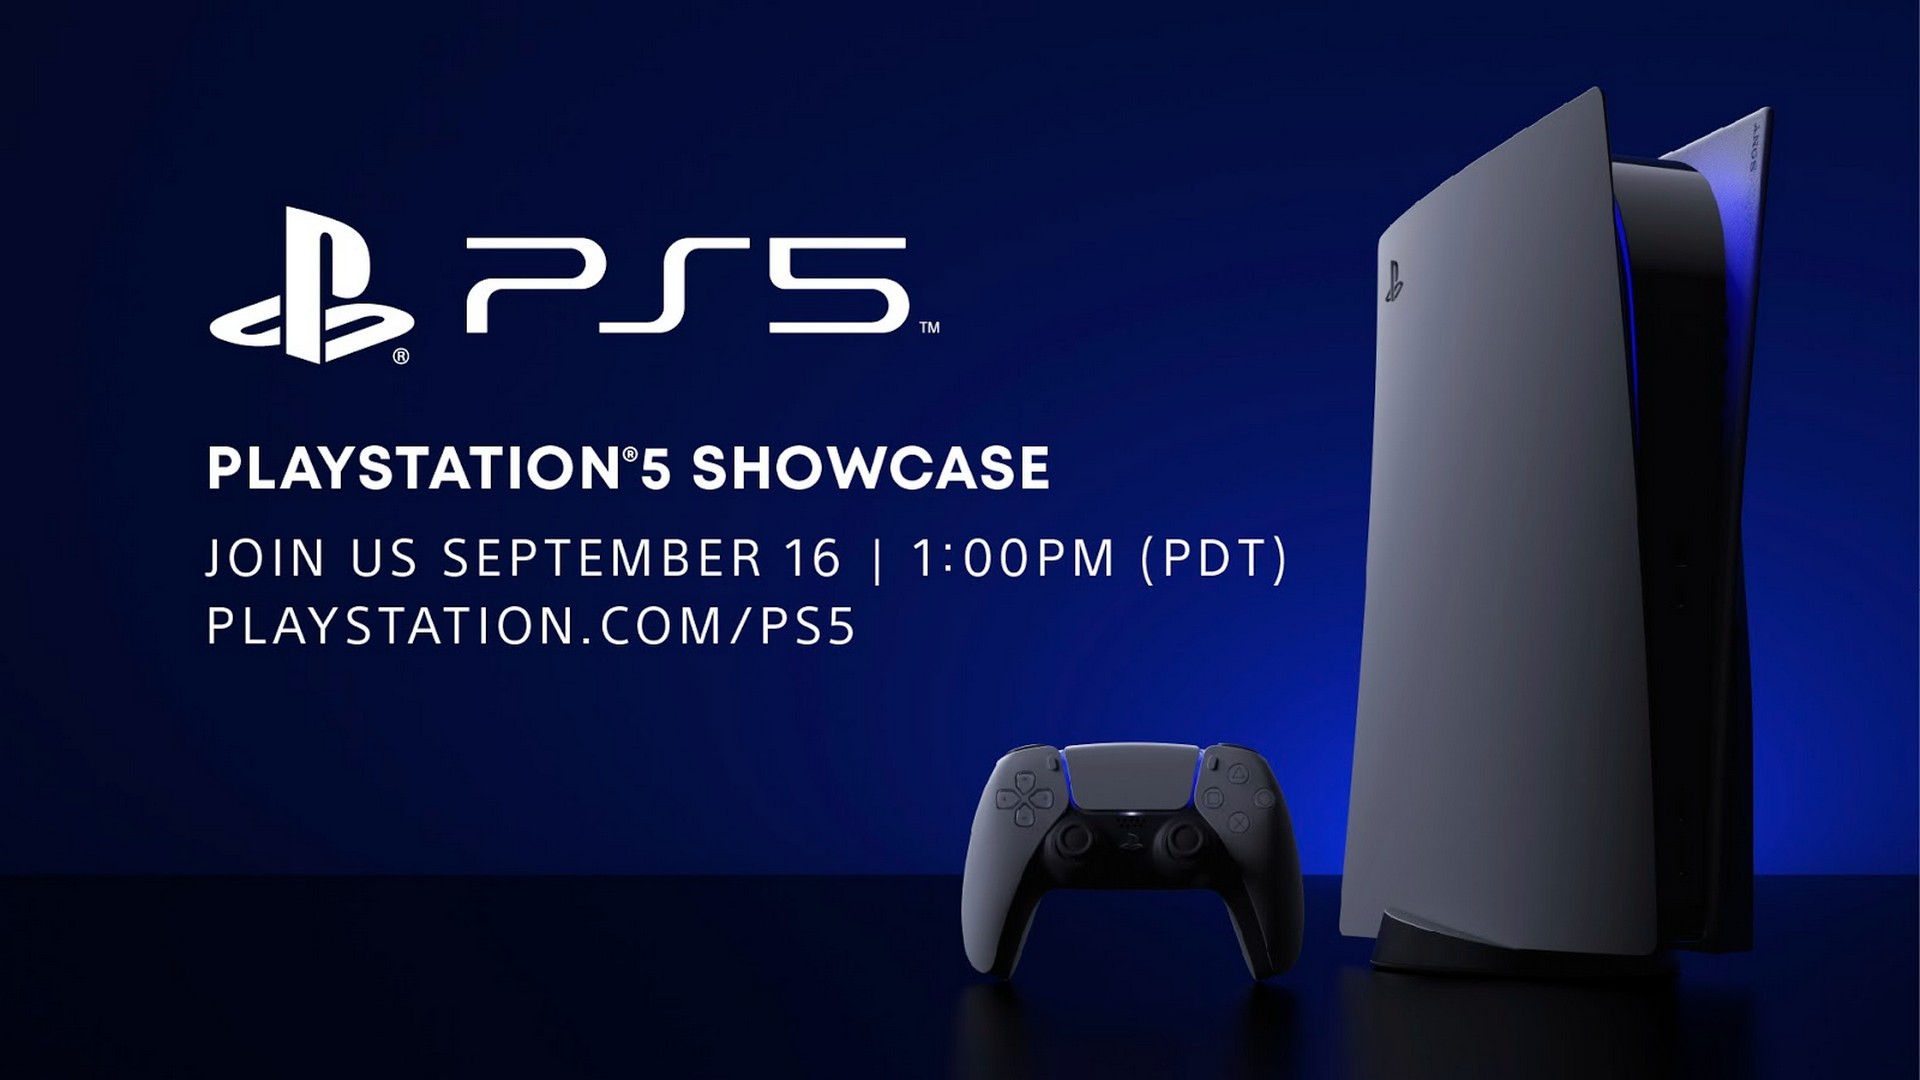 Watch Live: PlayStation 5 Showcase On Thursday, September 17 At 6:00 AEST